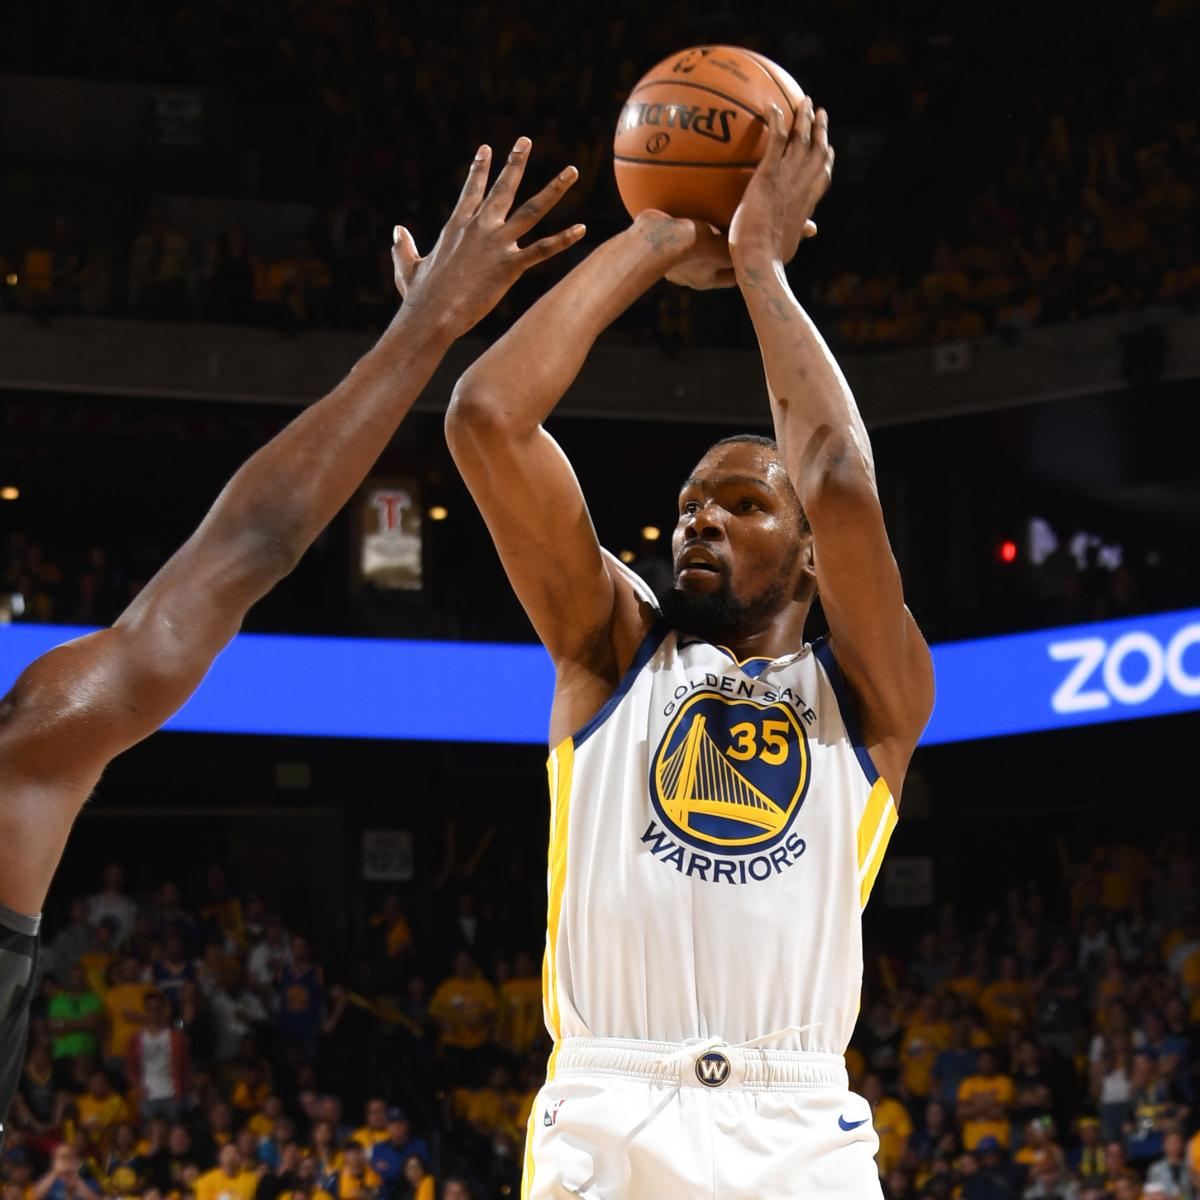 Rockets Vs Warriors May 24: Kevin Durant's 35 Carry Stephen Curry, Warriors To Win Vs